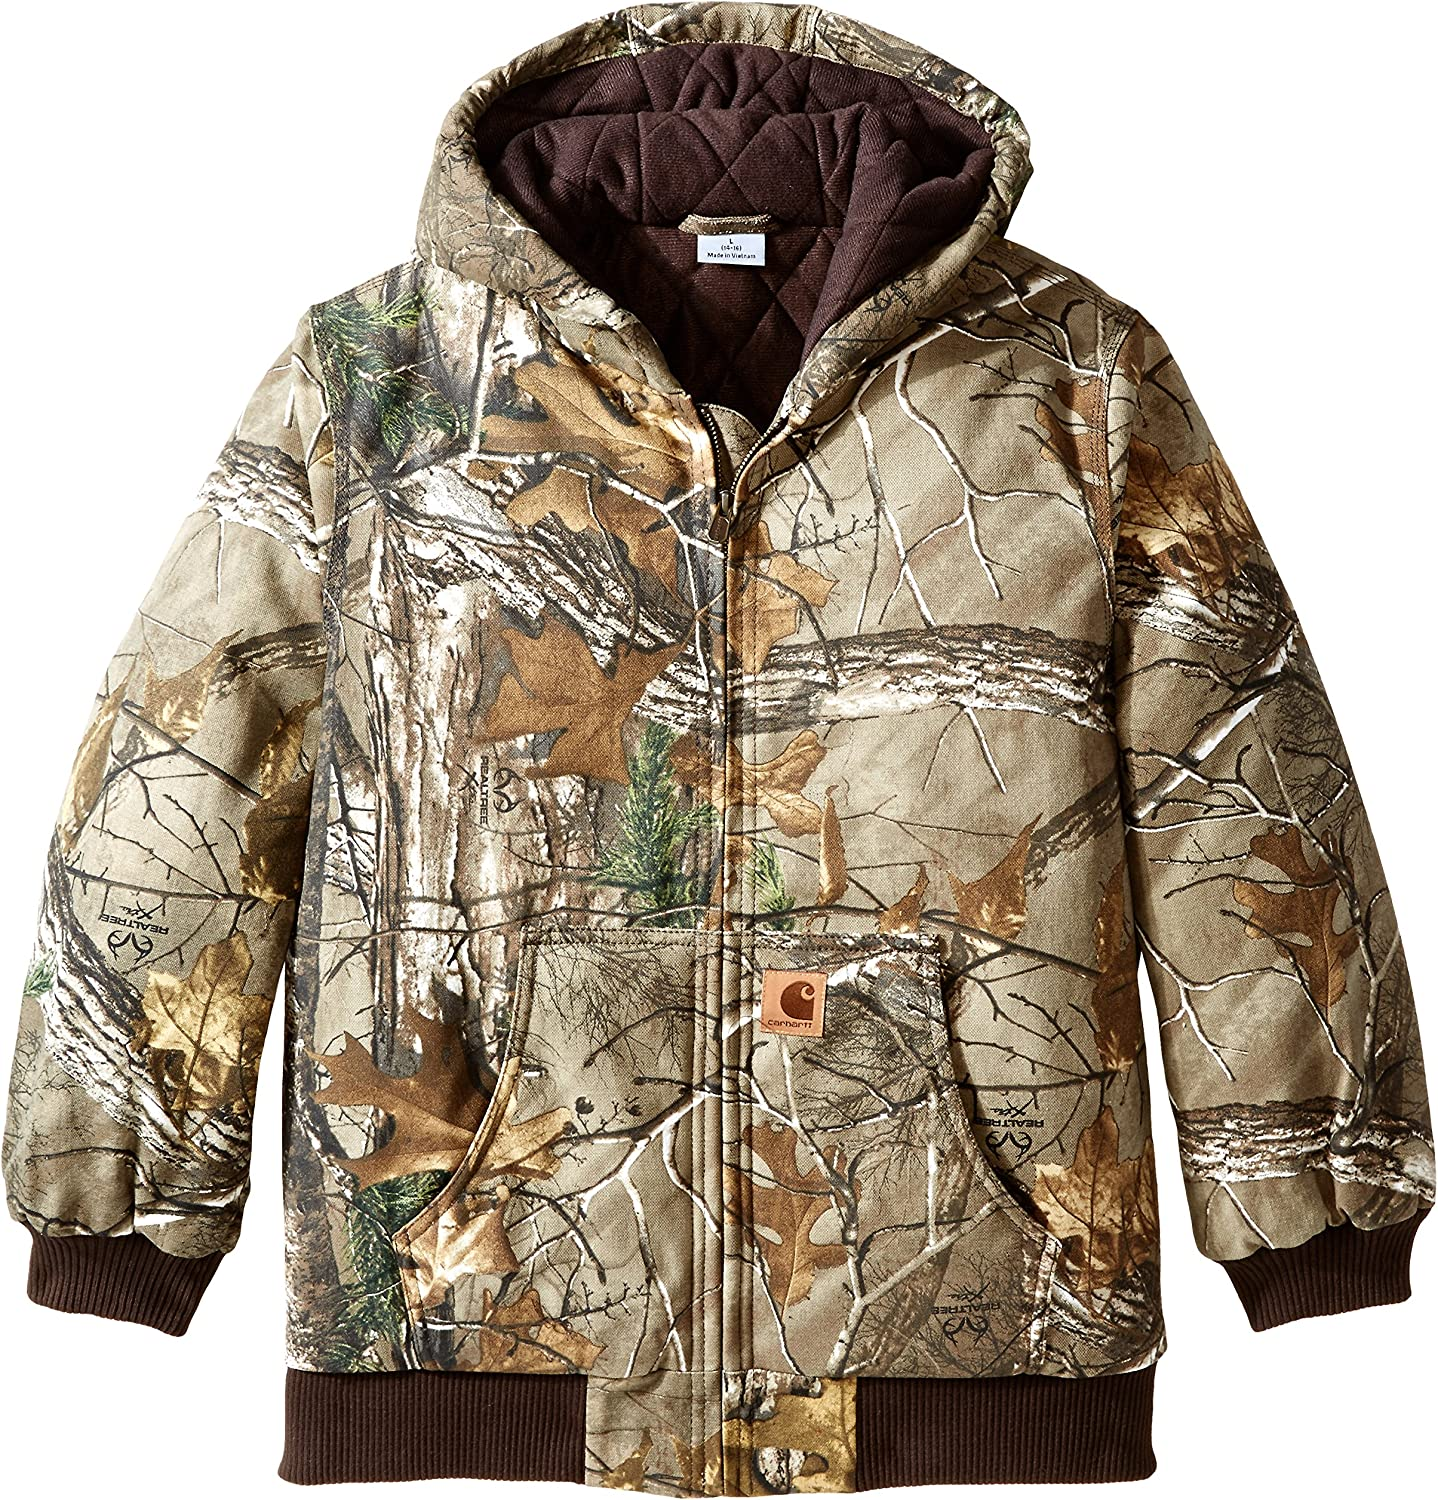 Carhartt Boys' Active Jac Quilt Lined Jacket Coat: Clothing